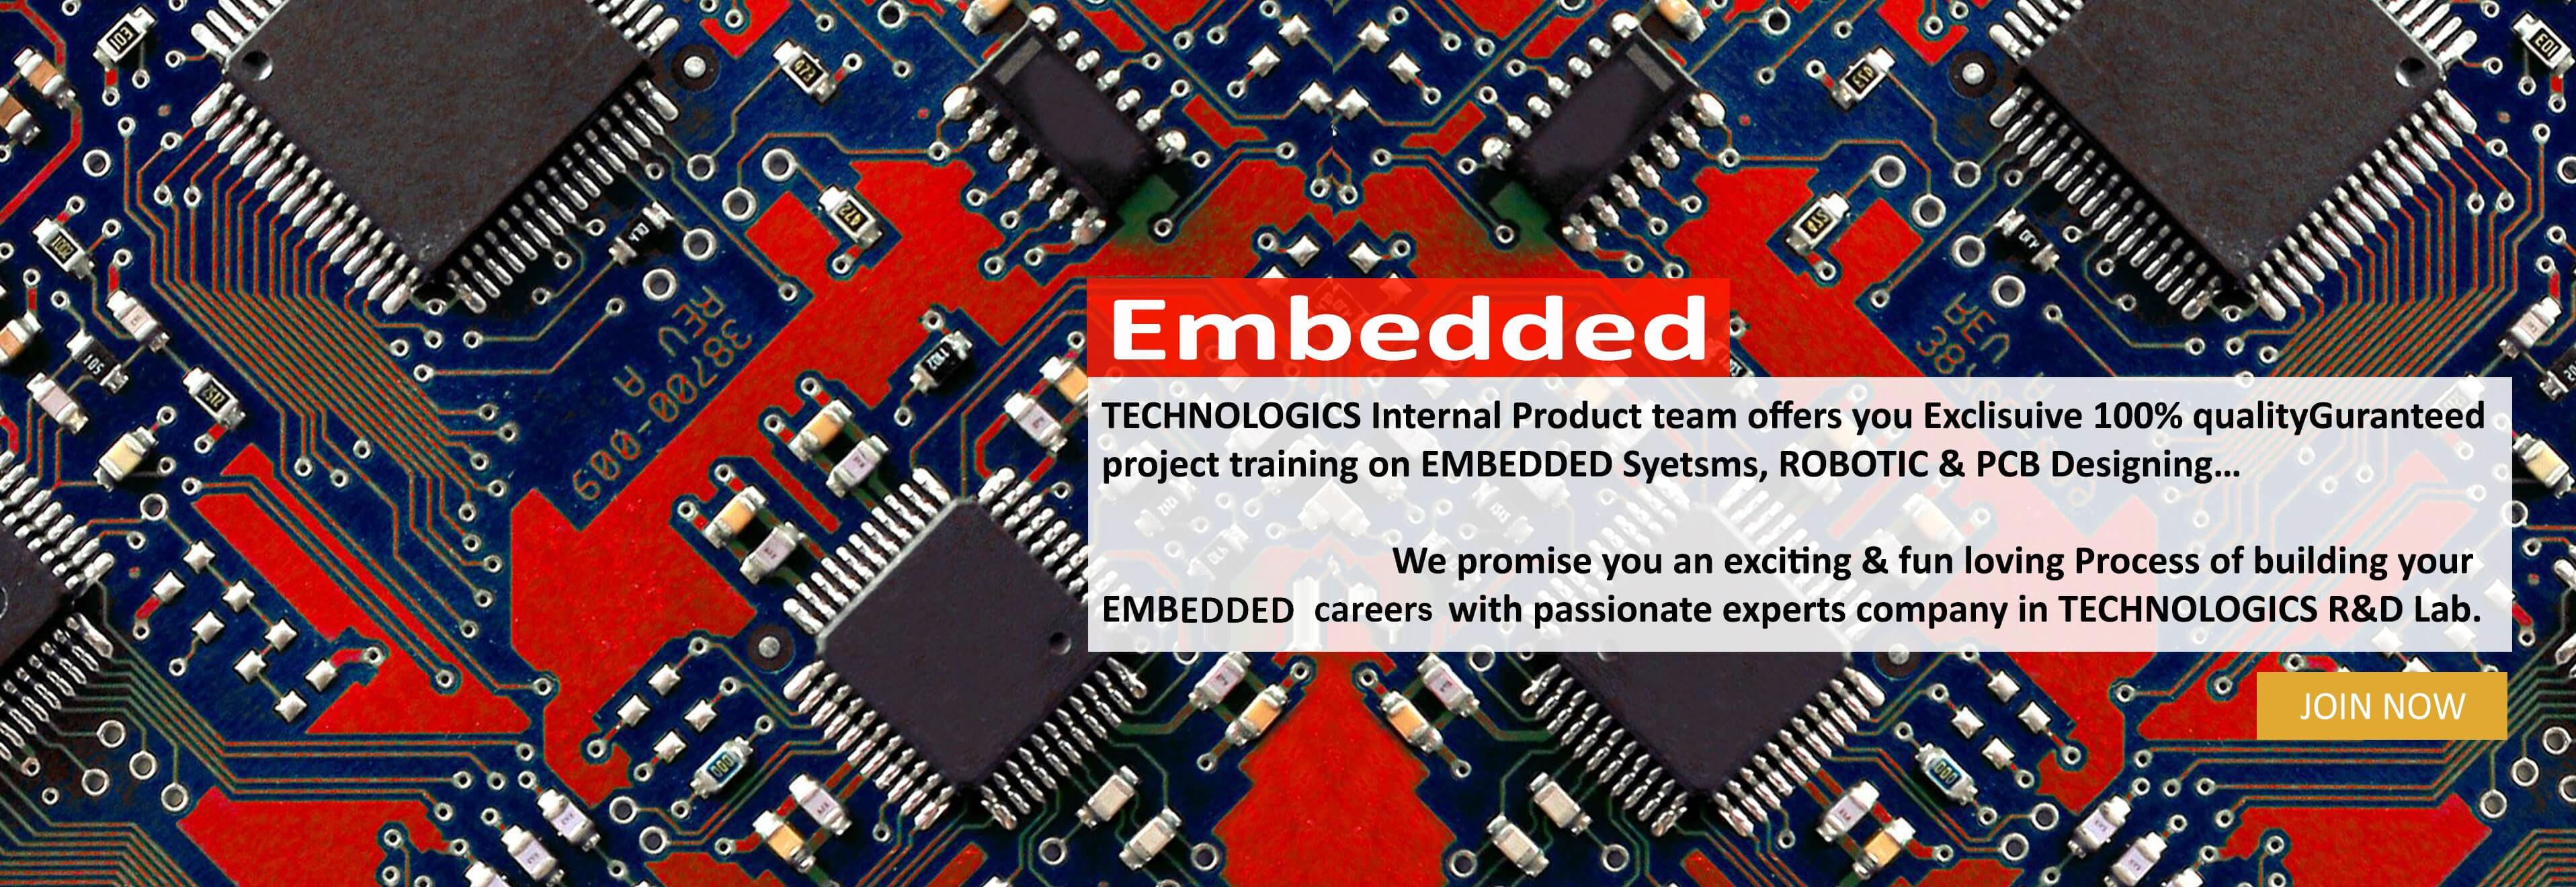 embedded-system-training-in-bangalore